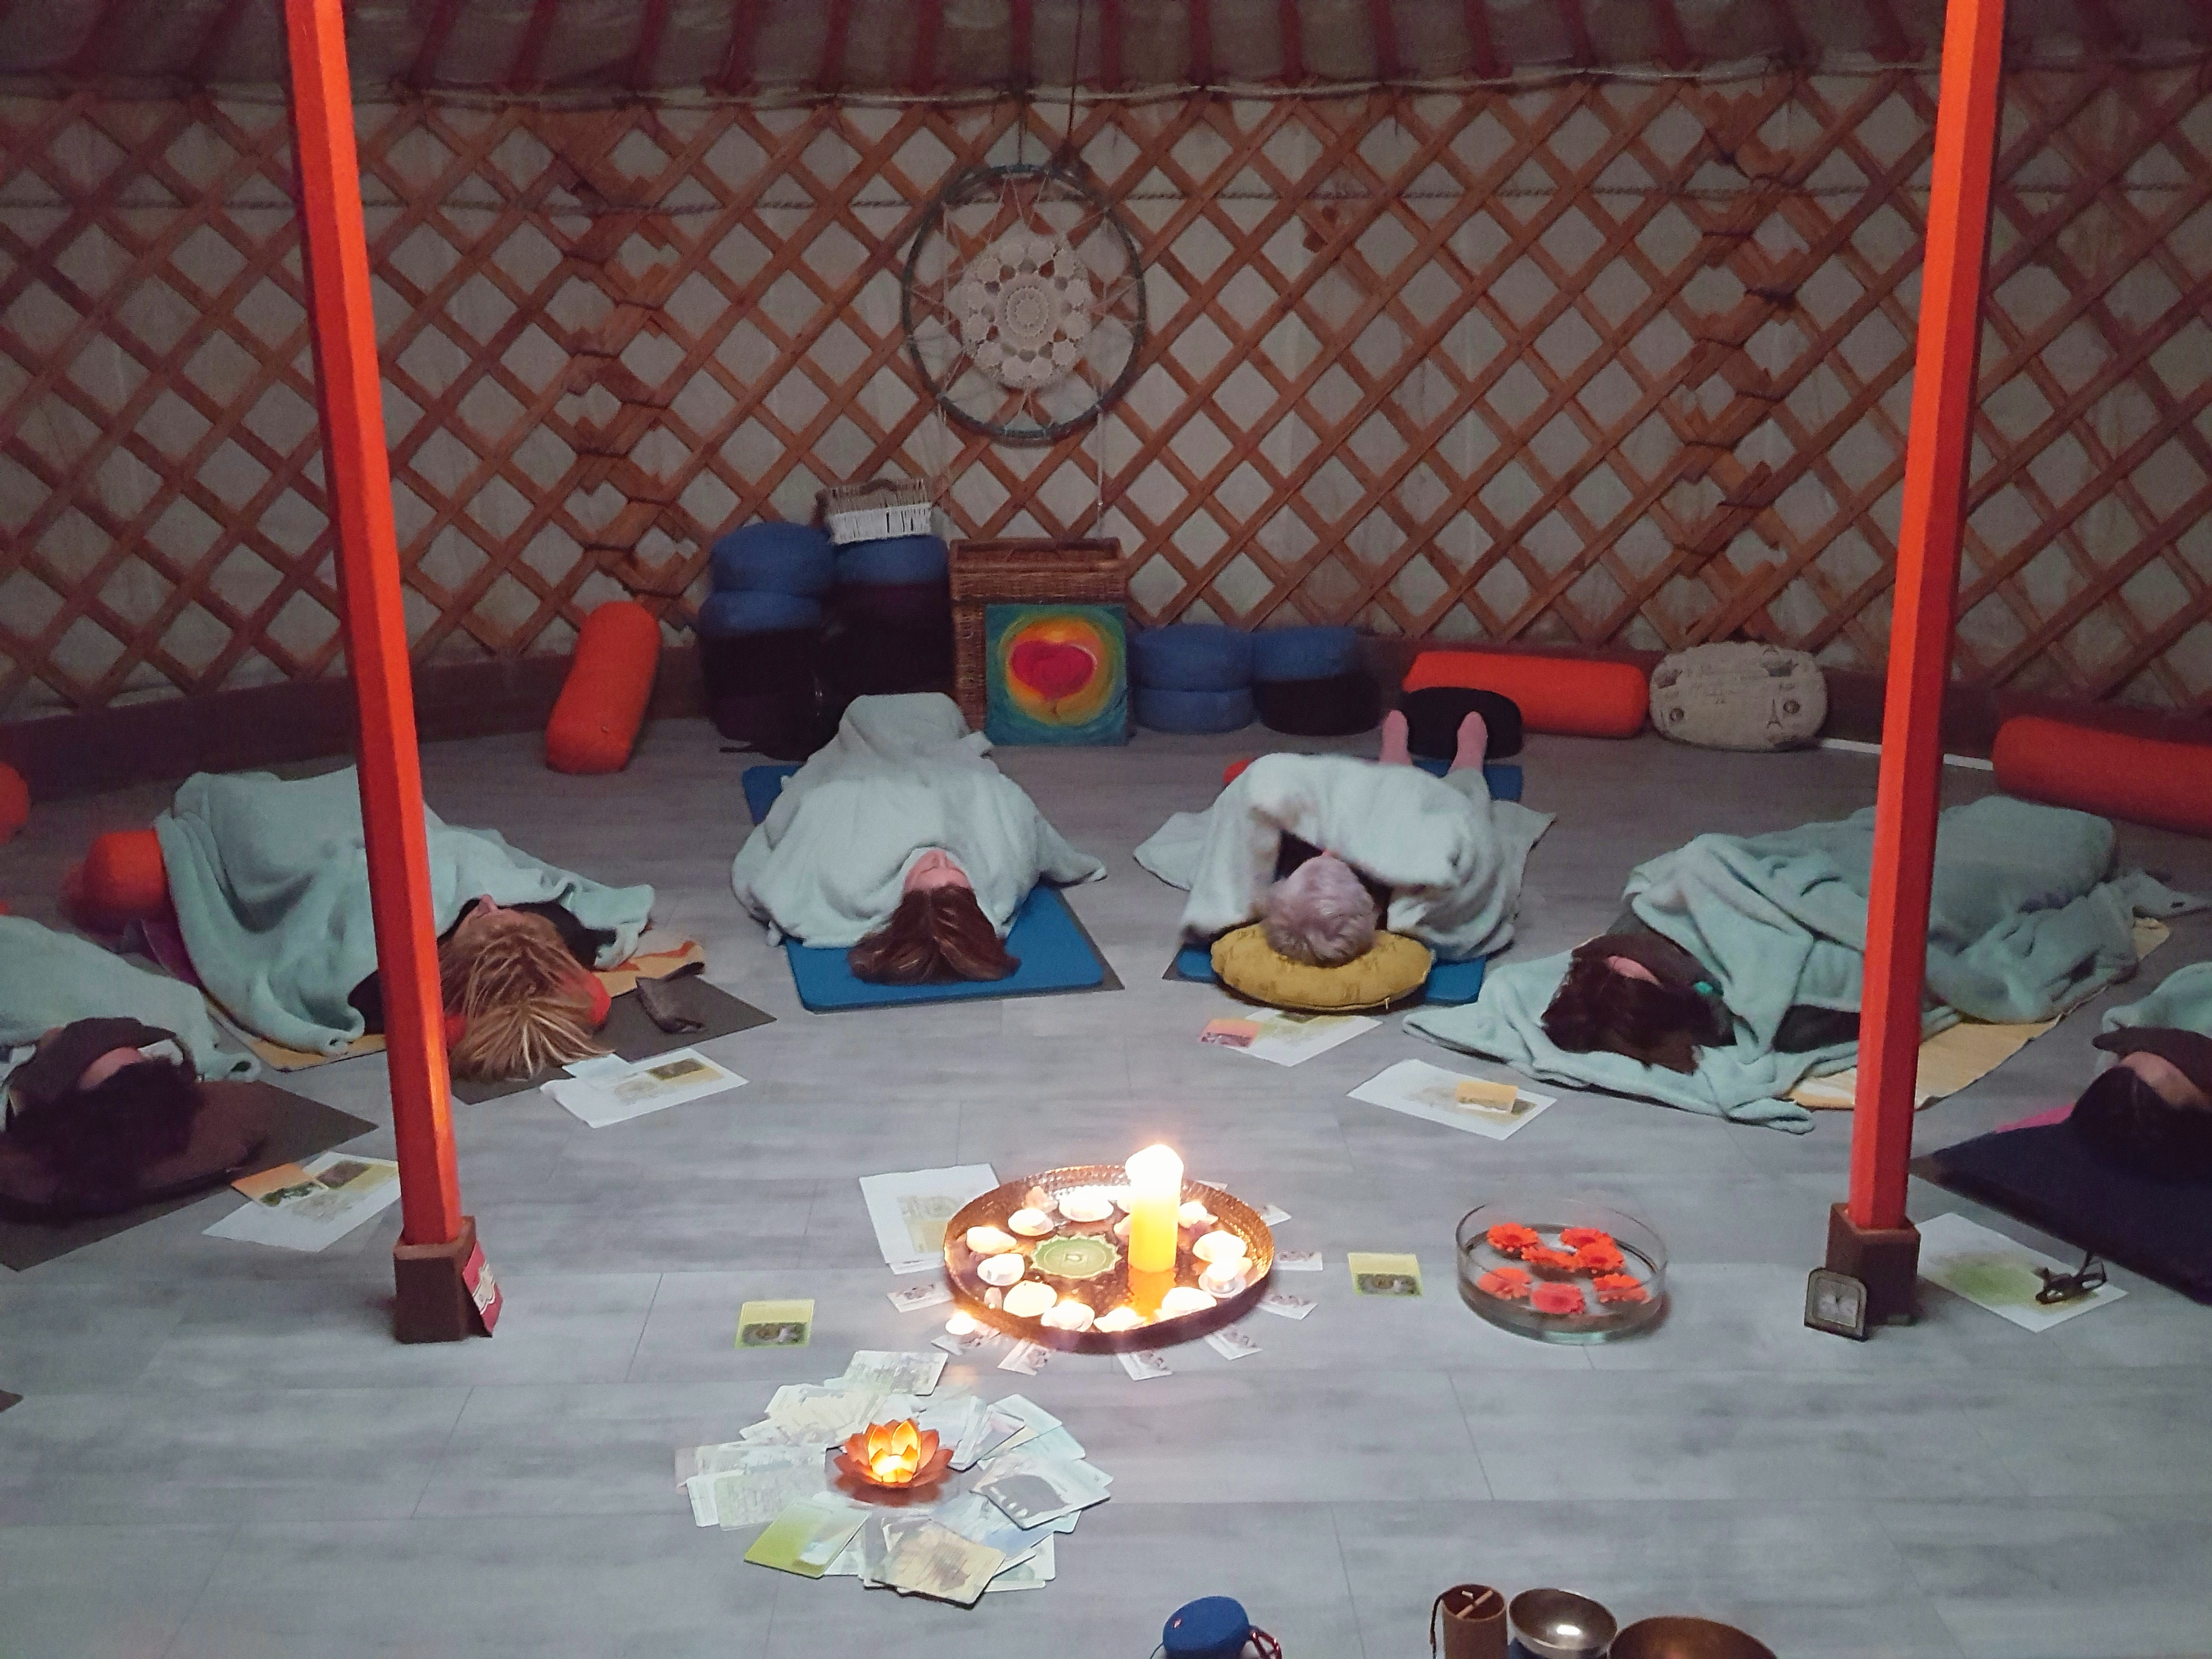 Deugden yoga in de yurt!